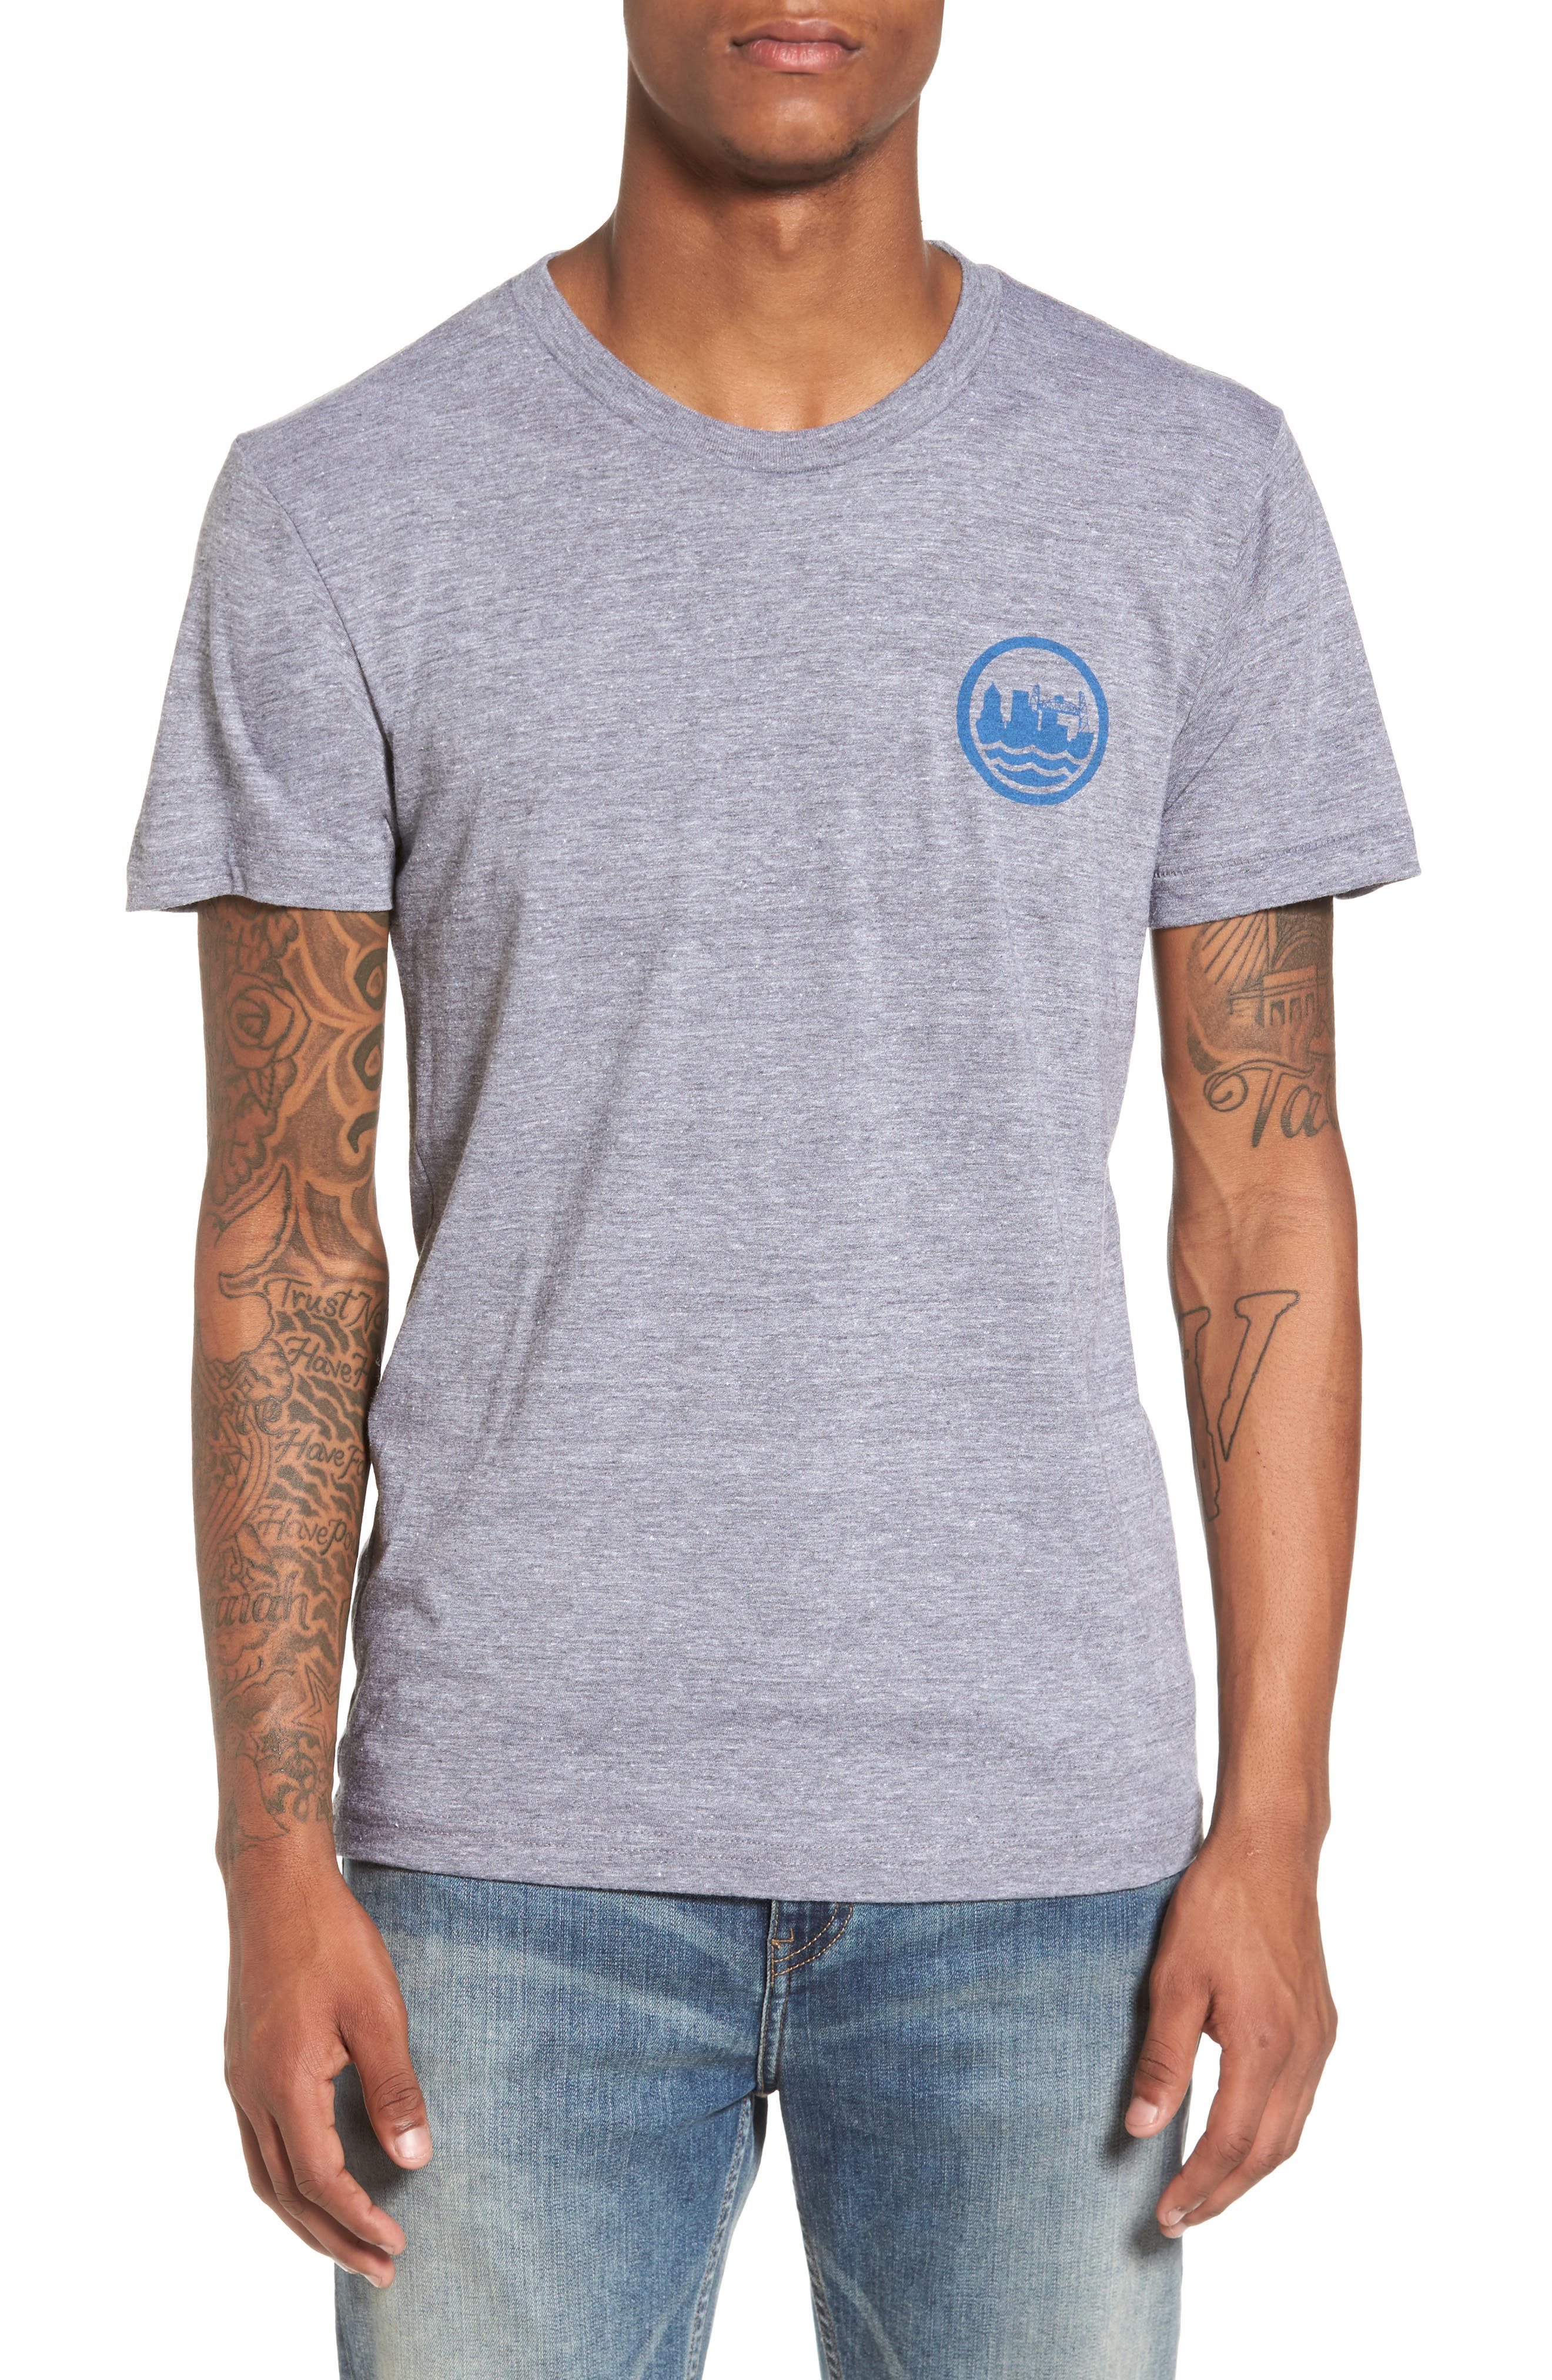 PDX T-Shirt,                         Main,                         color, Tri Athletic Grey